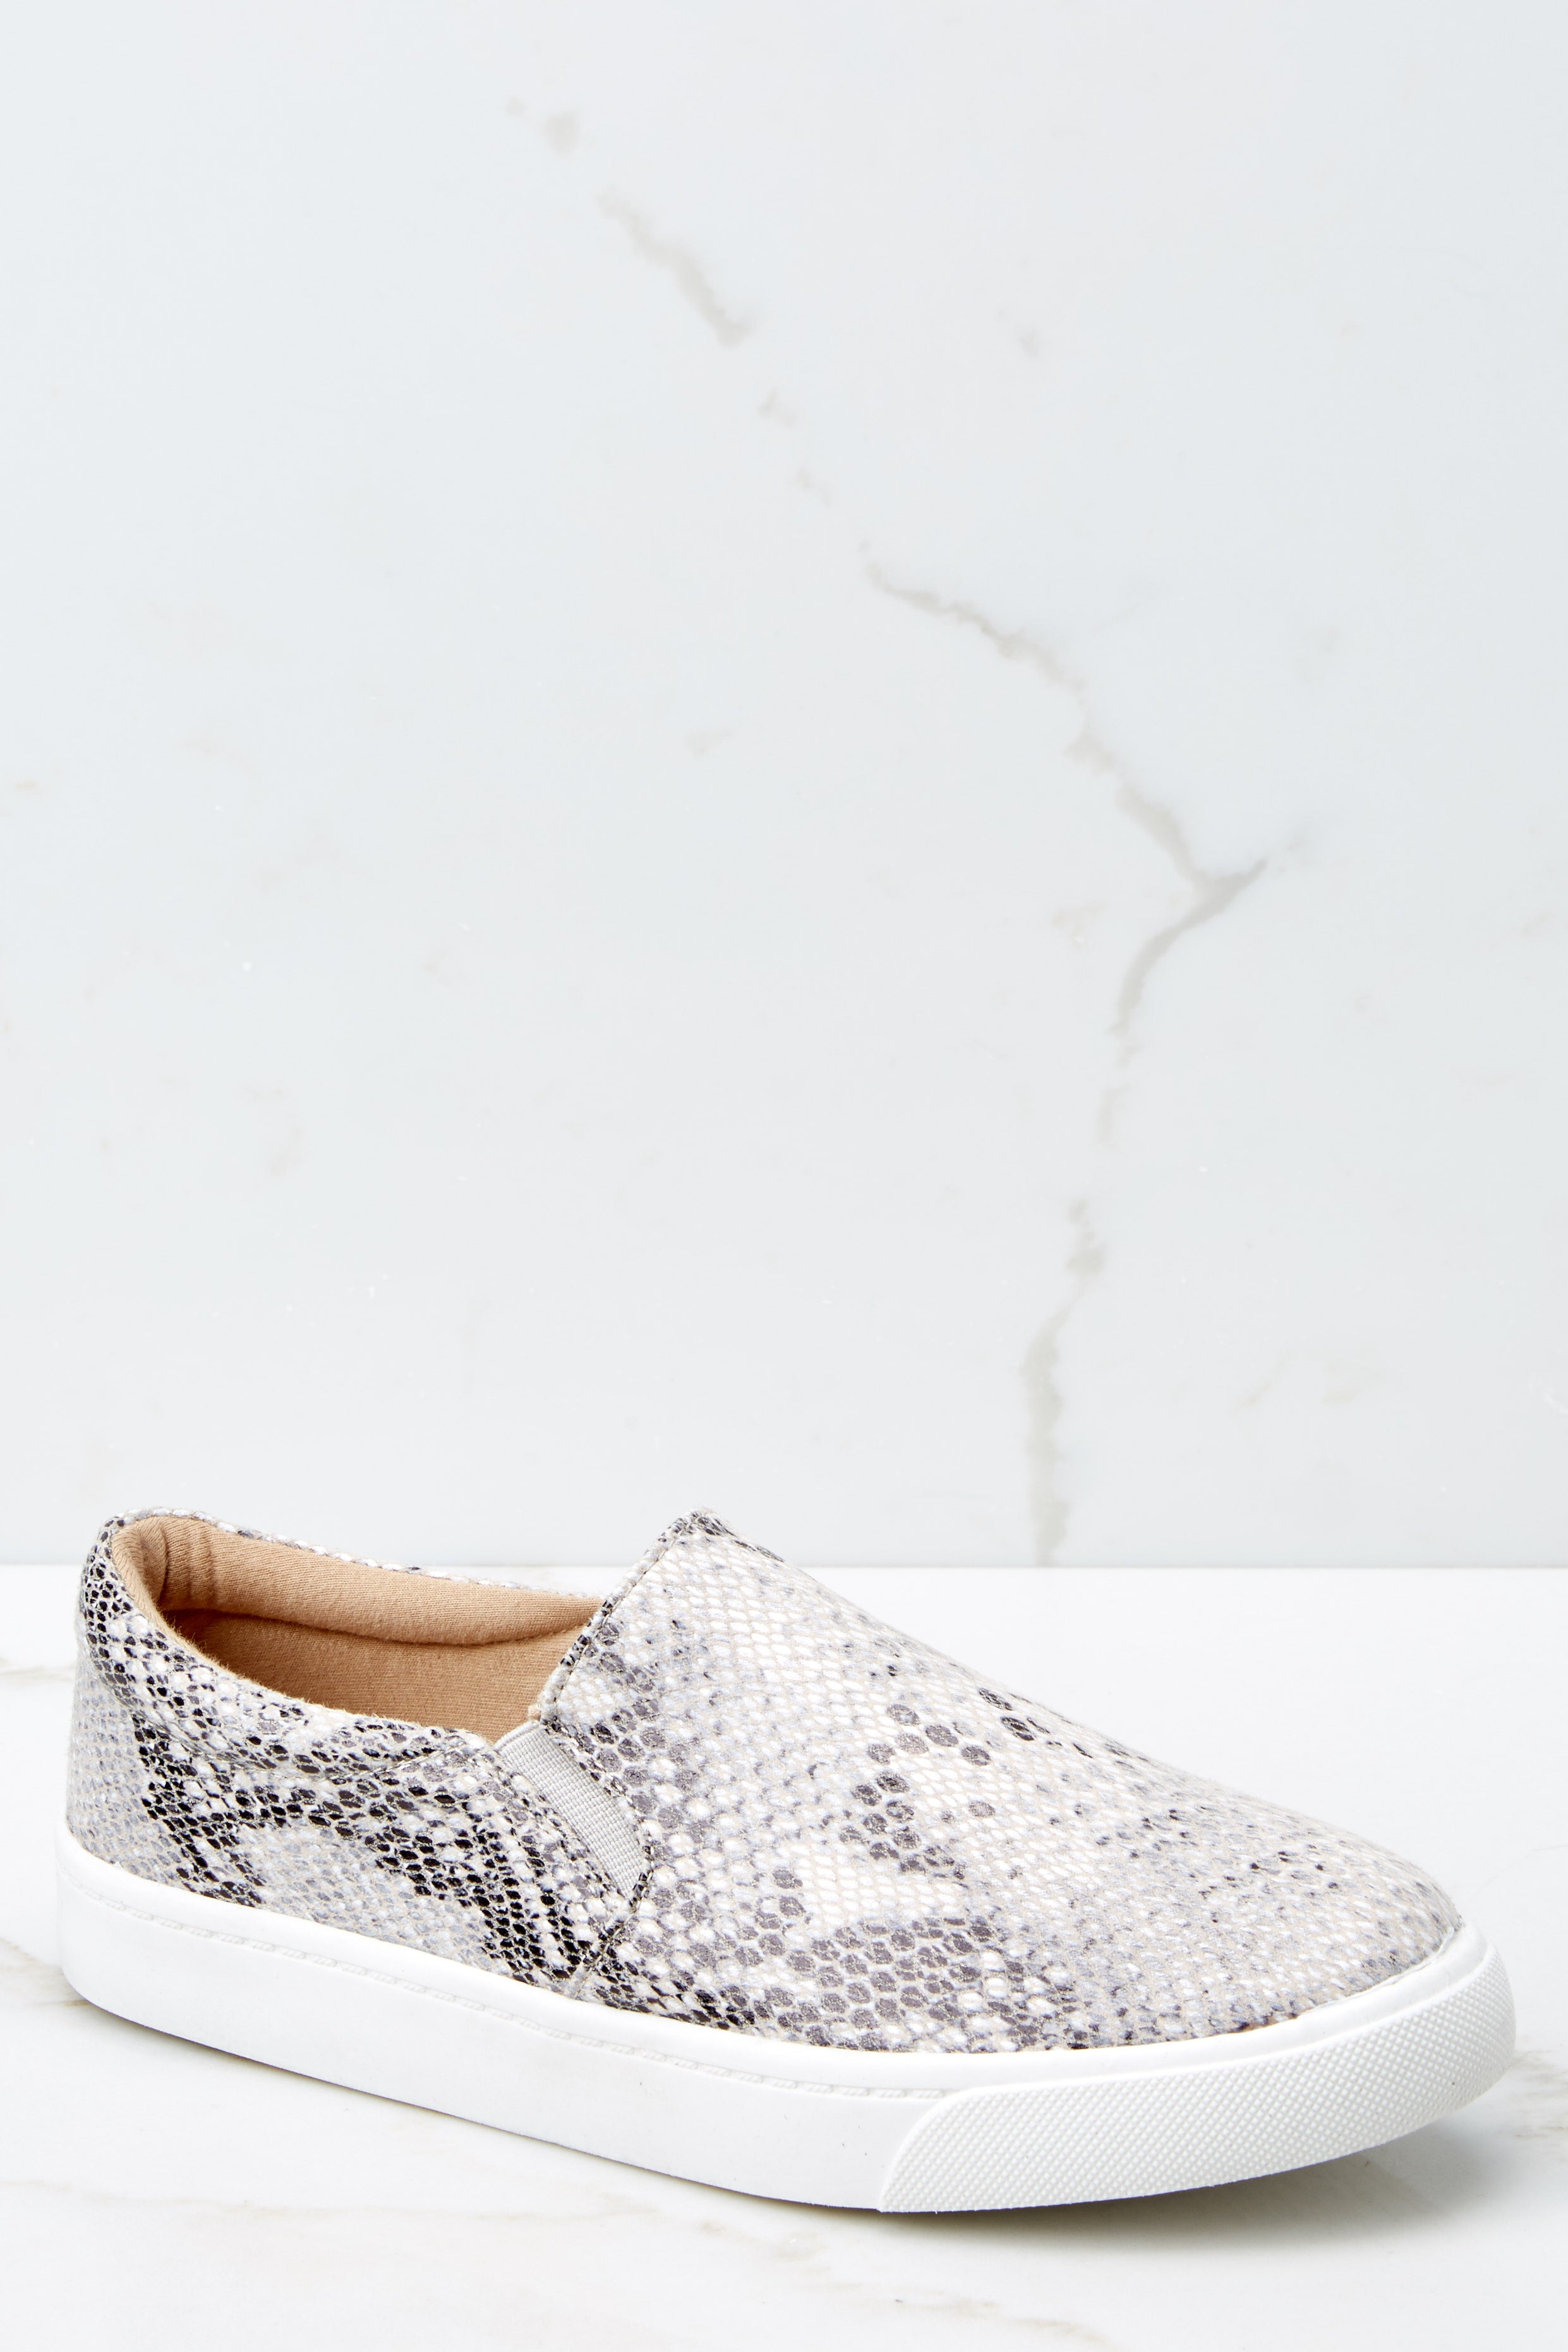 f0b310d855c693 Snake Print Slip On Sneakers - Vegan Leather Slip Ons - Shoes ...